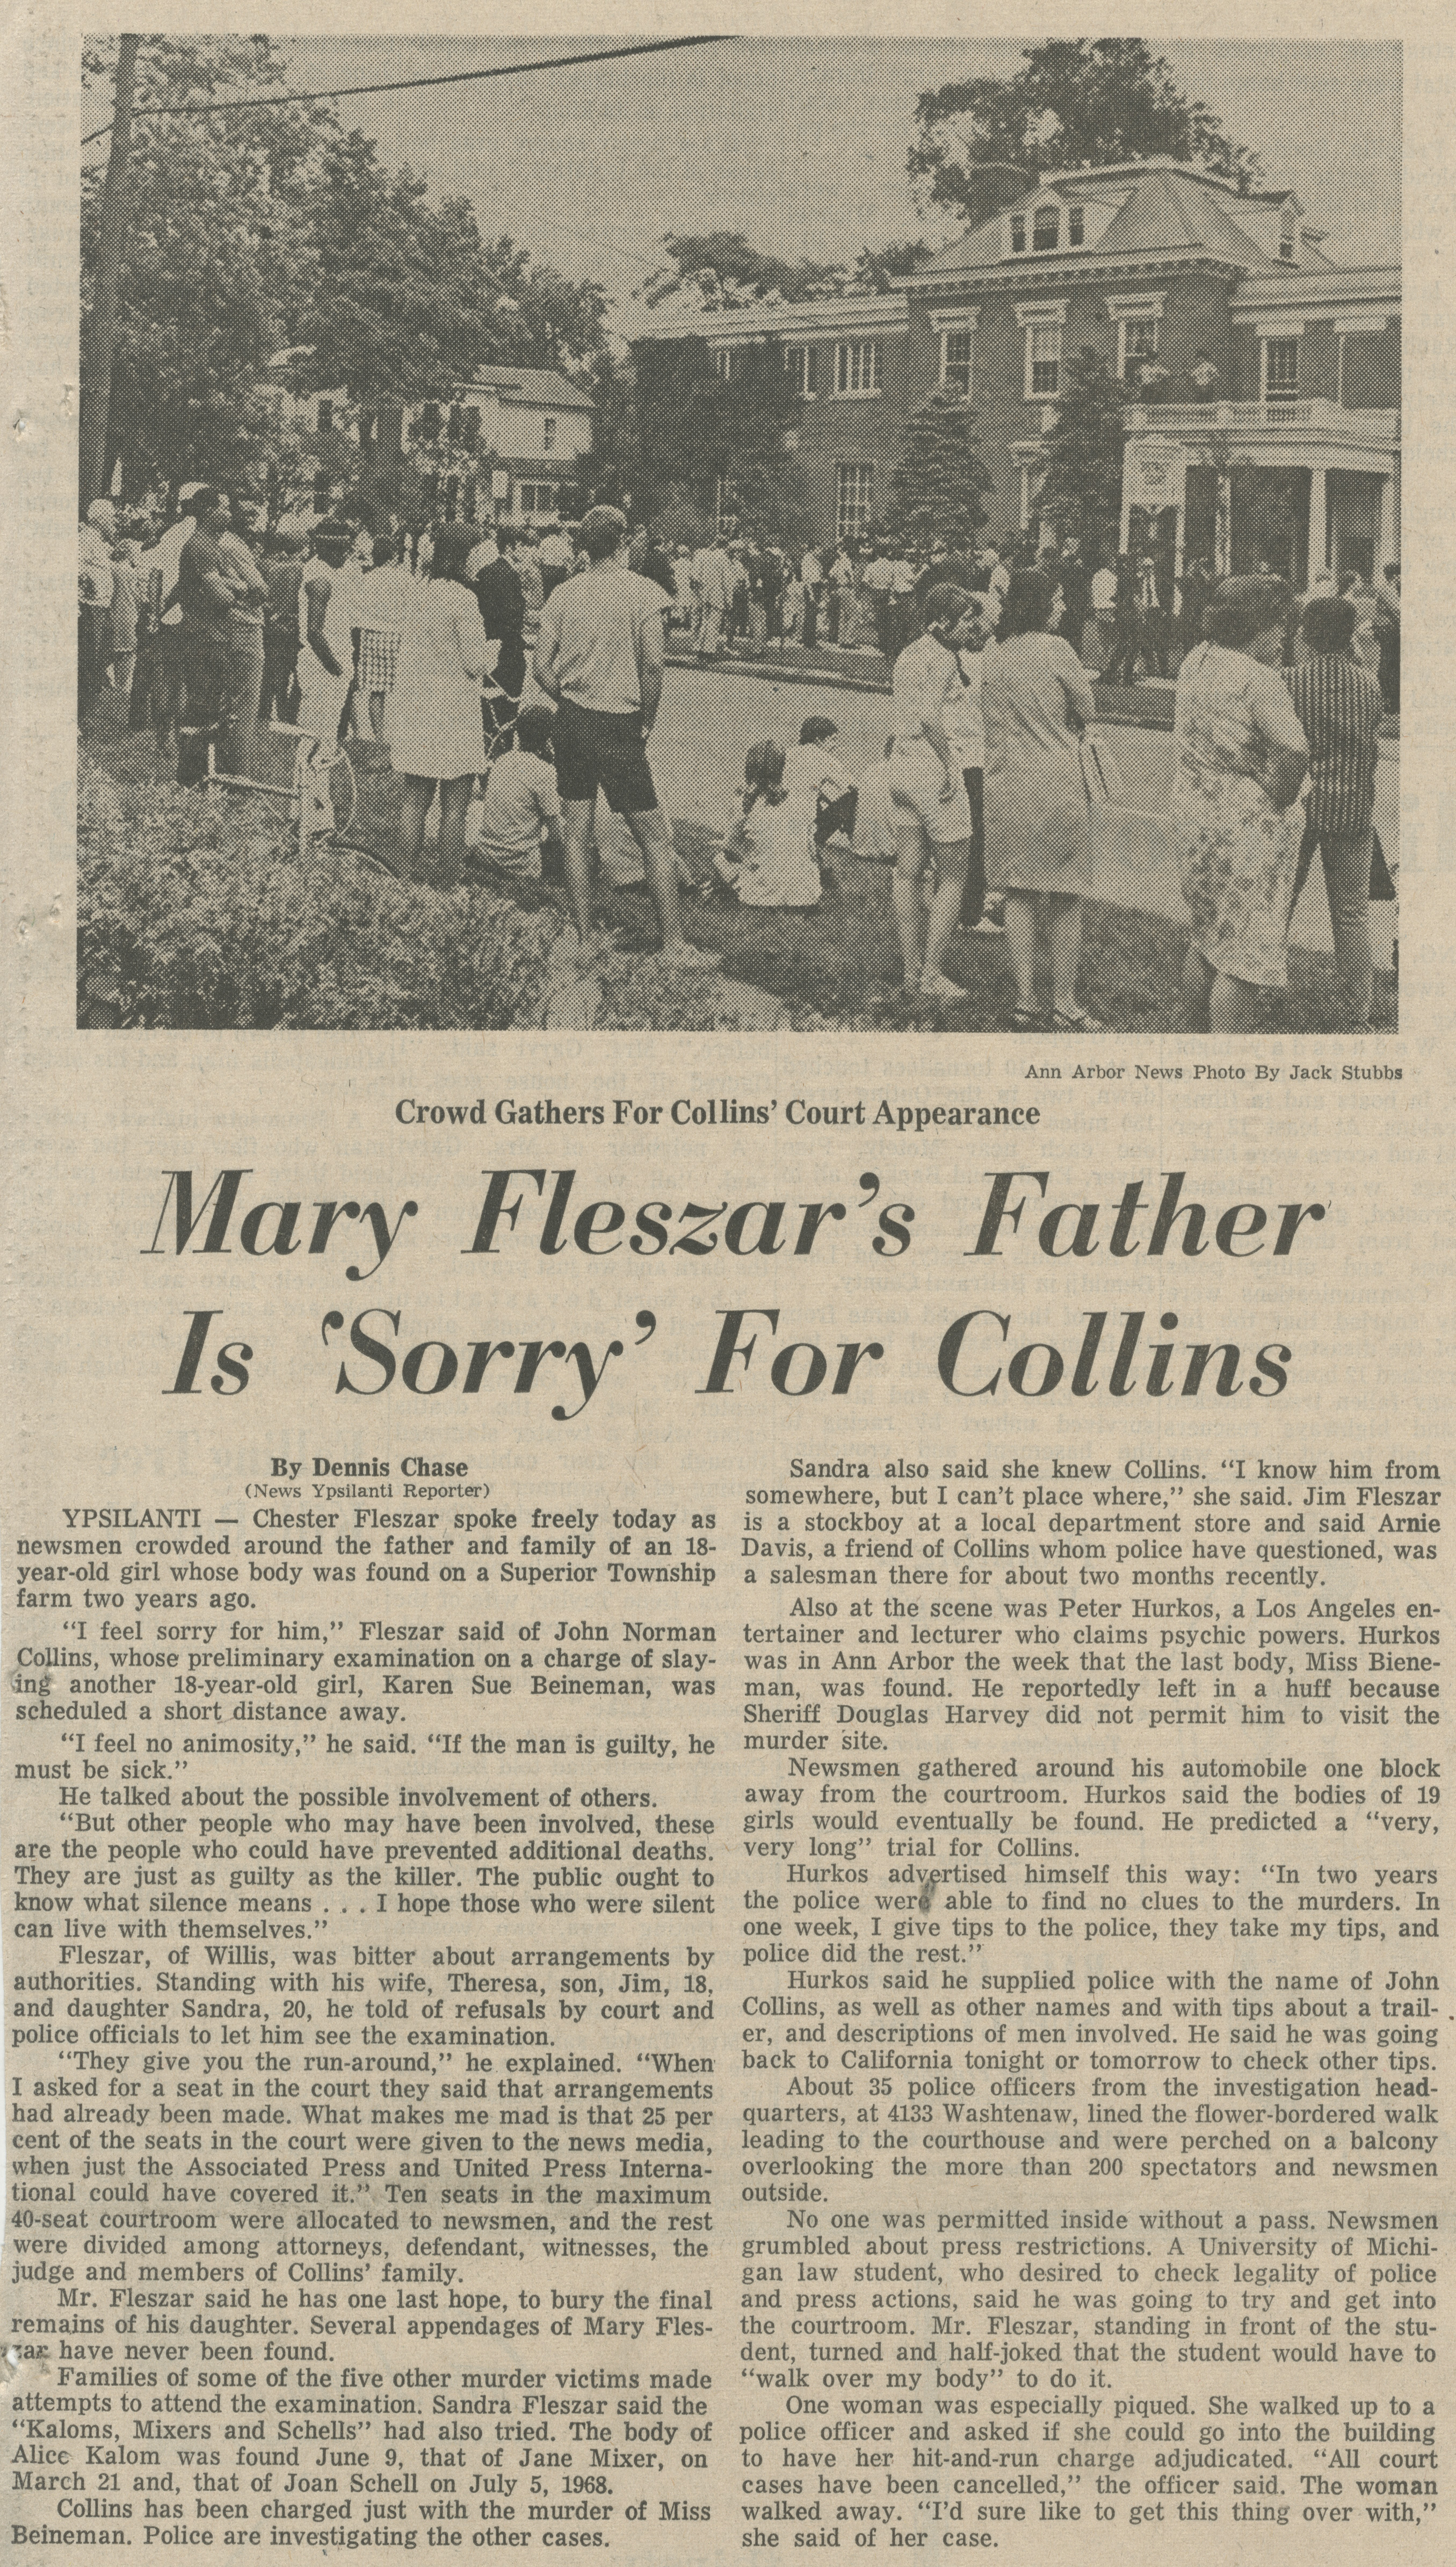 Mary Fleszar's Father Is 'Sorry' For Collins image